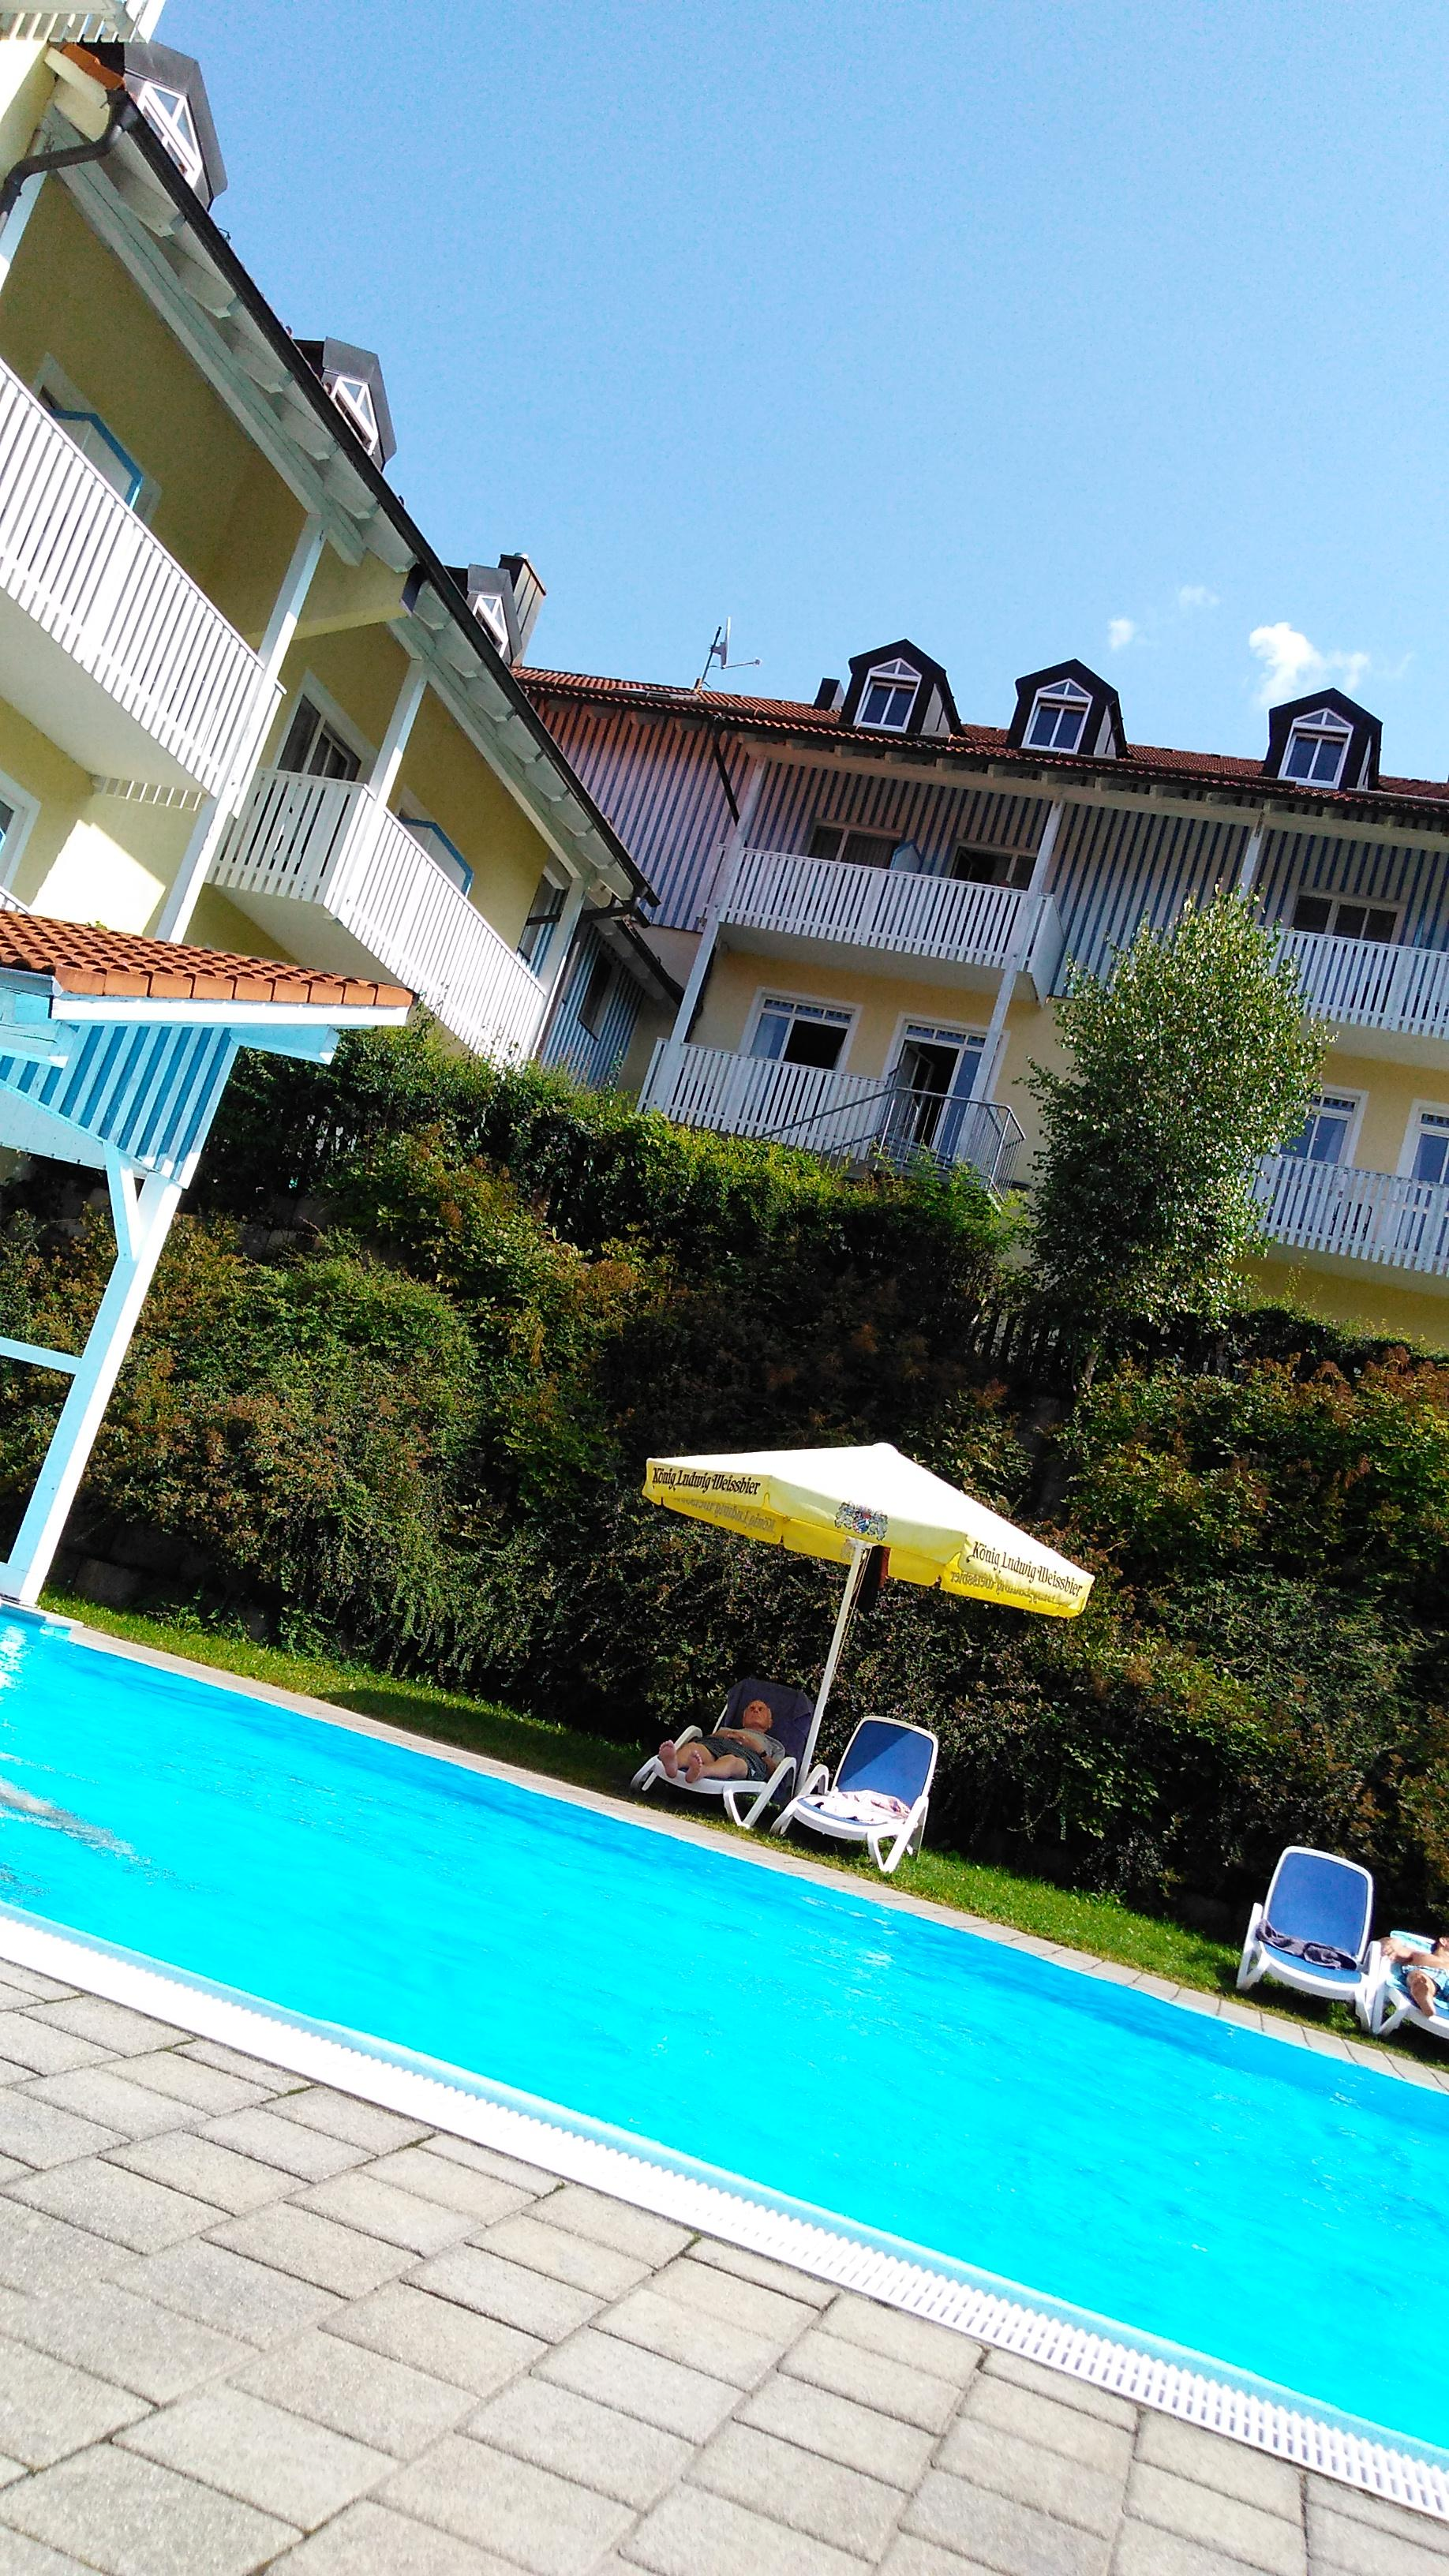 Cash Pool Frankfurt Hauptbahnhof Hotel Ahornhof 2019 Pictures Reviews Prices Deals